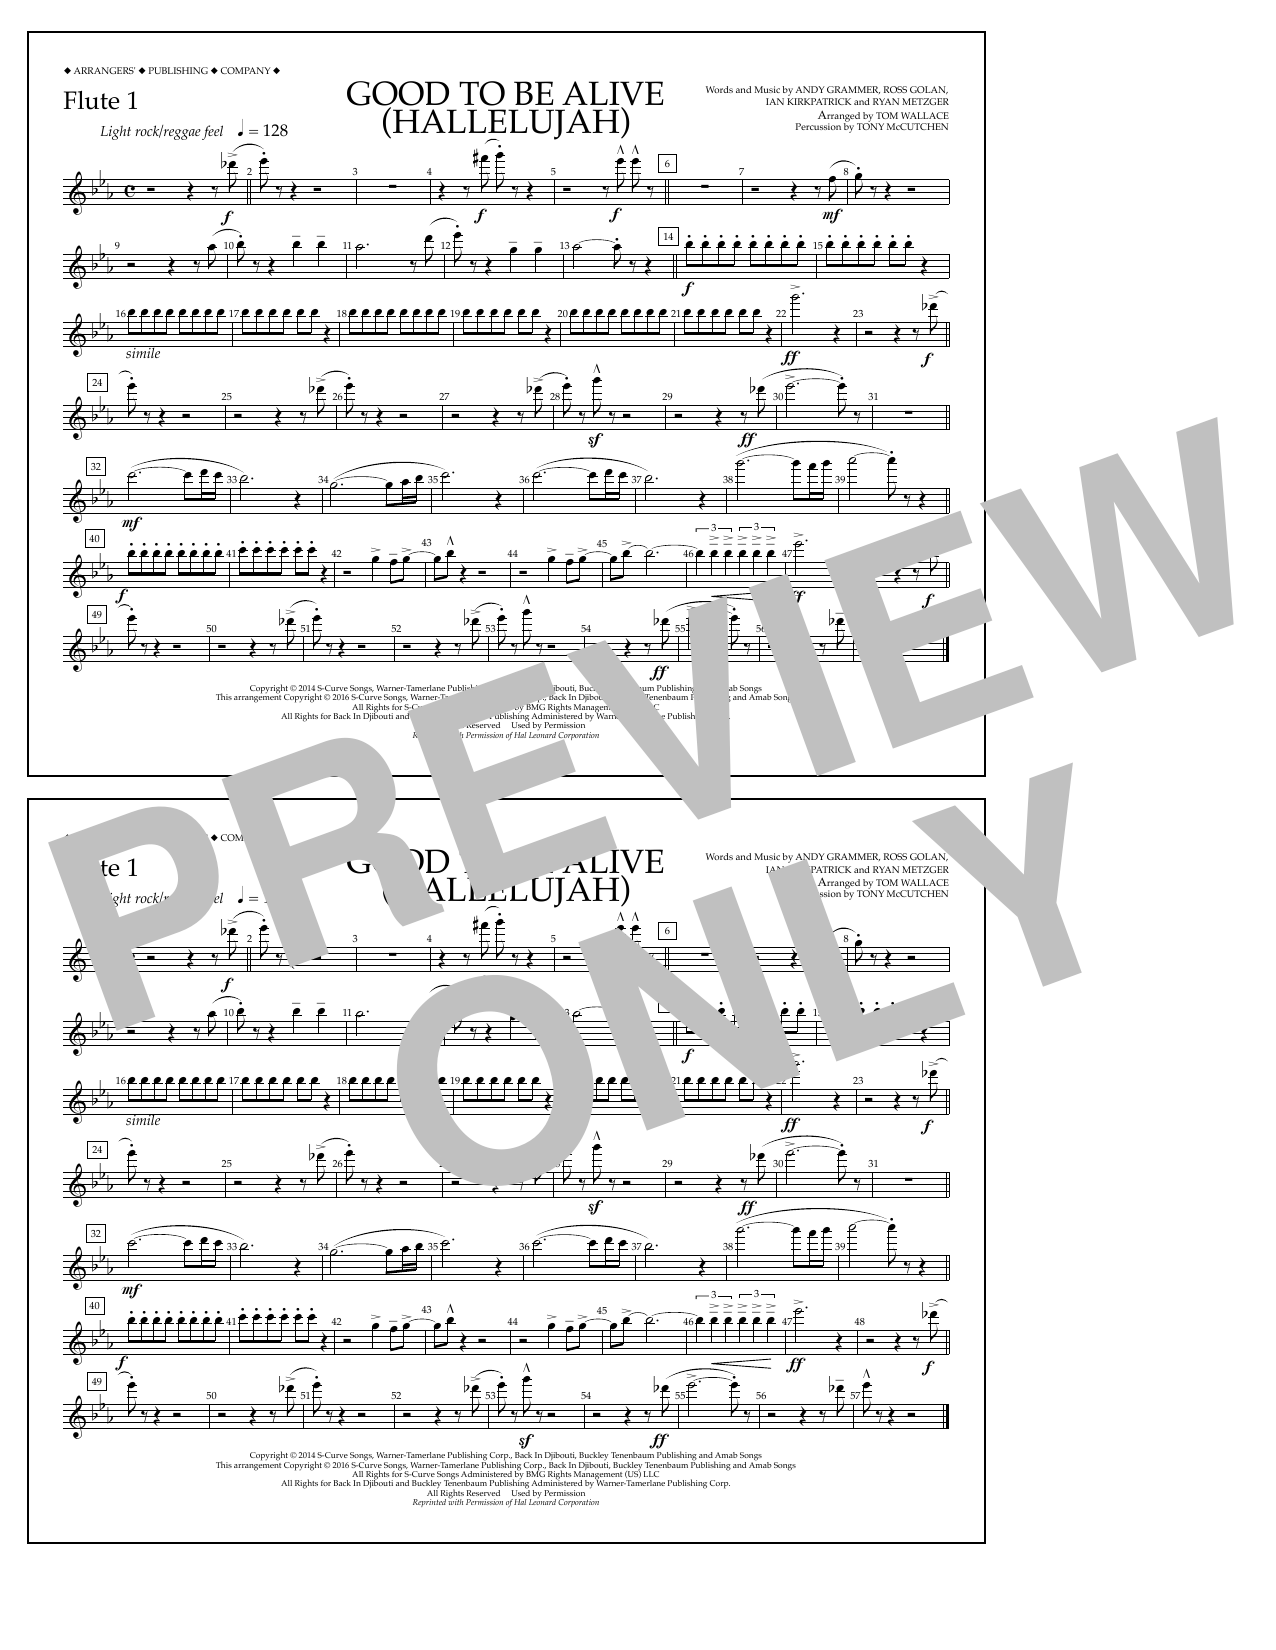 Good to Be Alive (Hallelujah) - Flute 1 Sheet Music